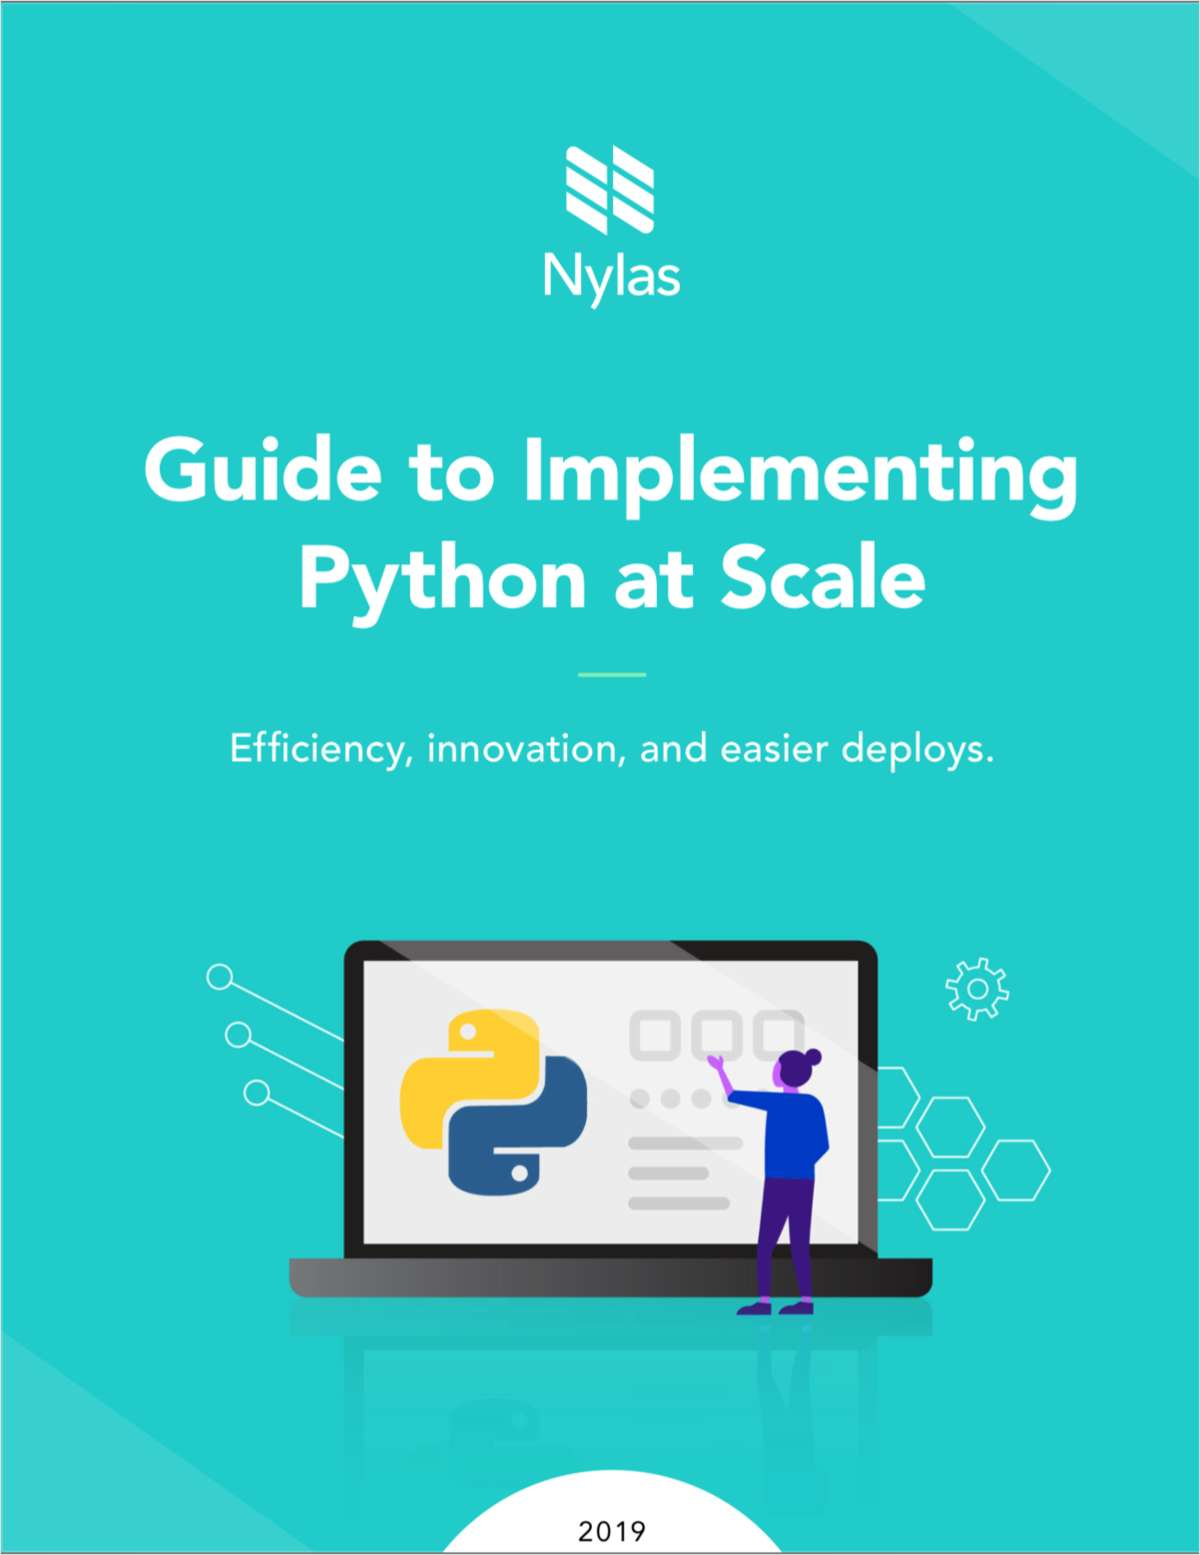 Guide to Implementing Python at Scale